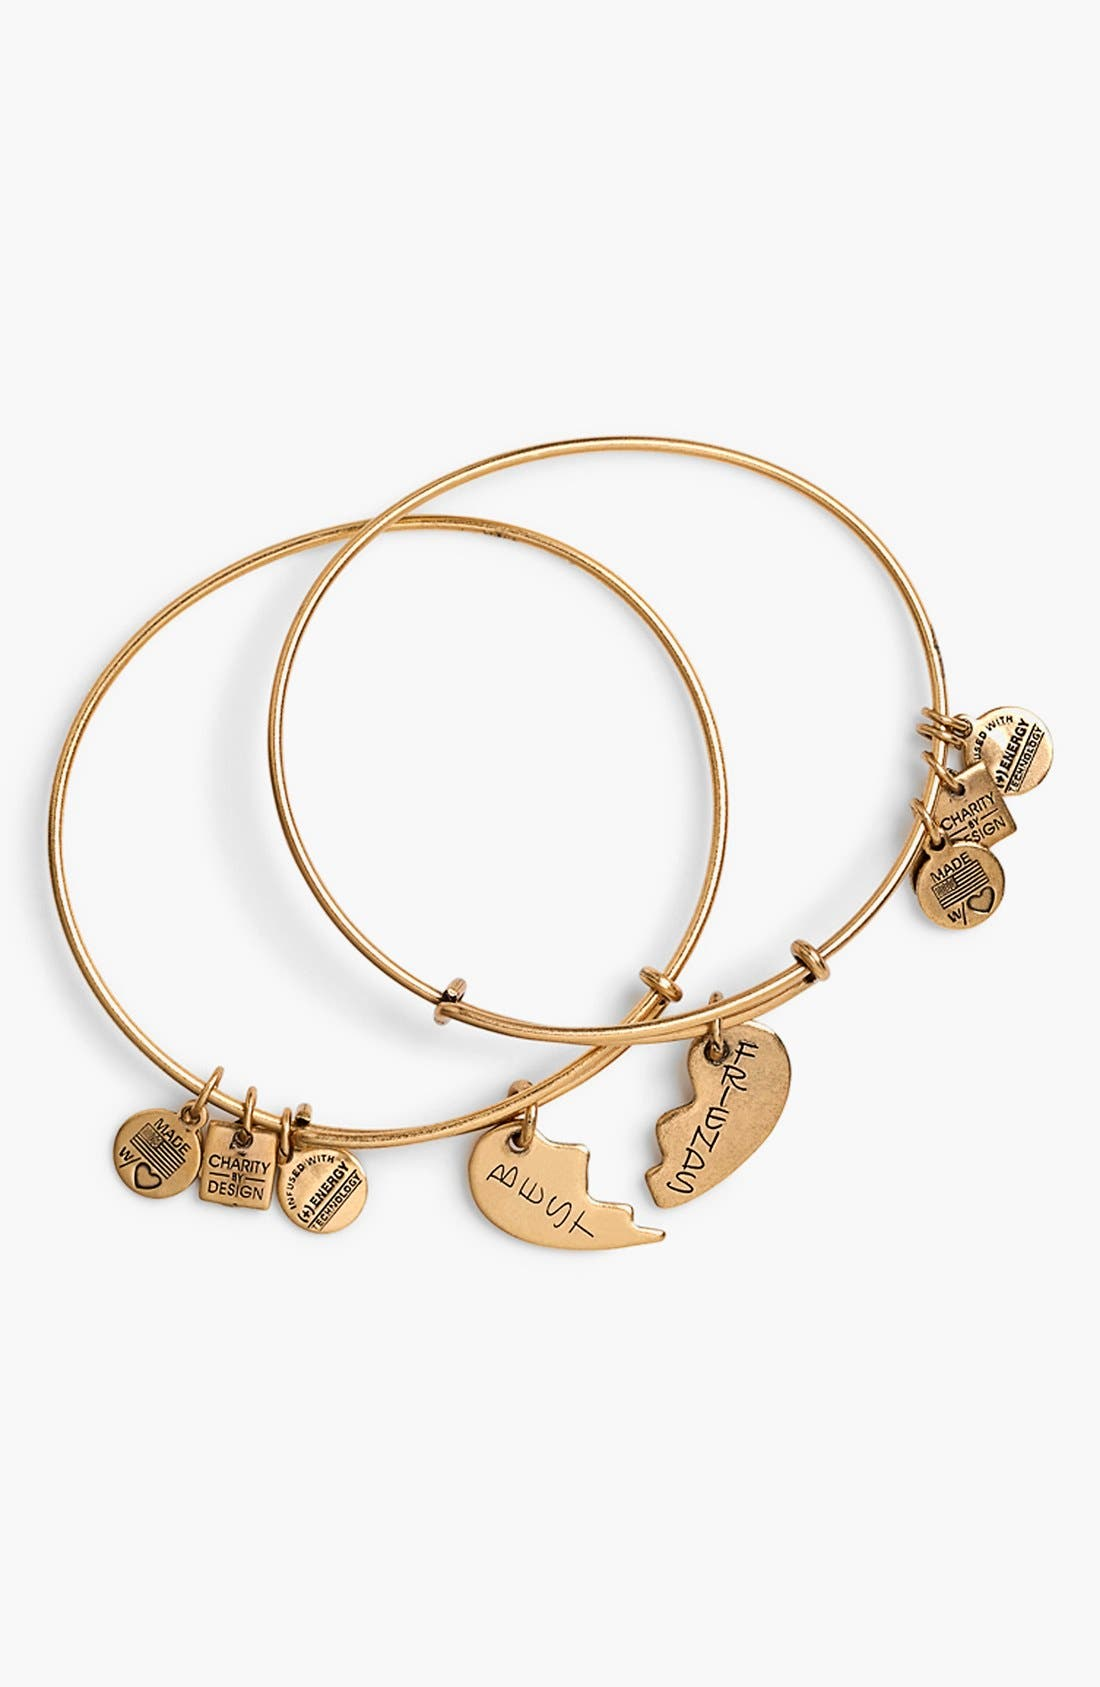 'Charity by Design - Best Friends' Adjustable Wire Bangles,                         Main,                         color, Gold